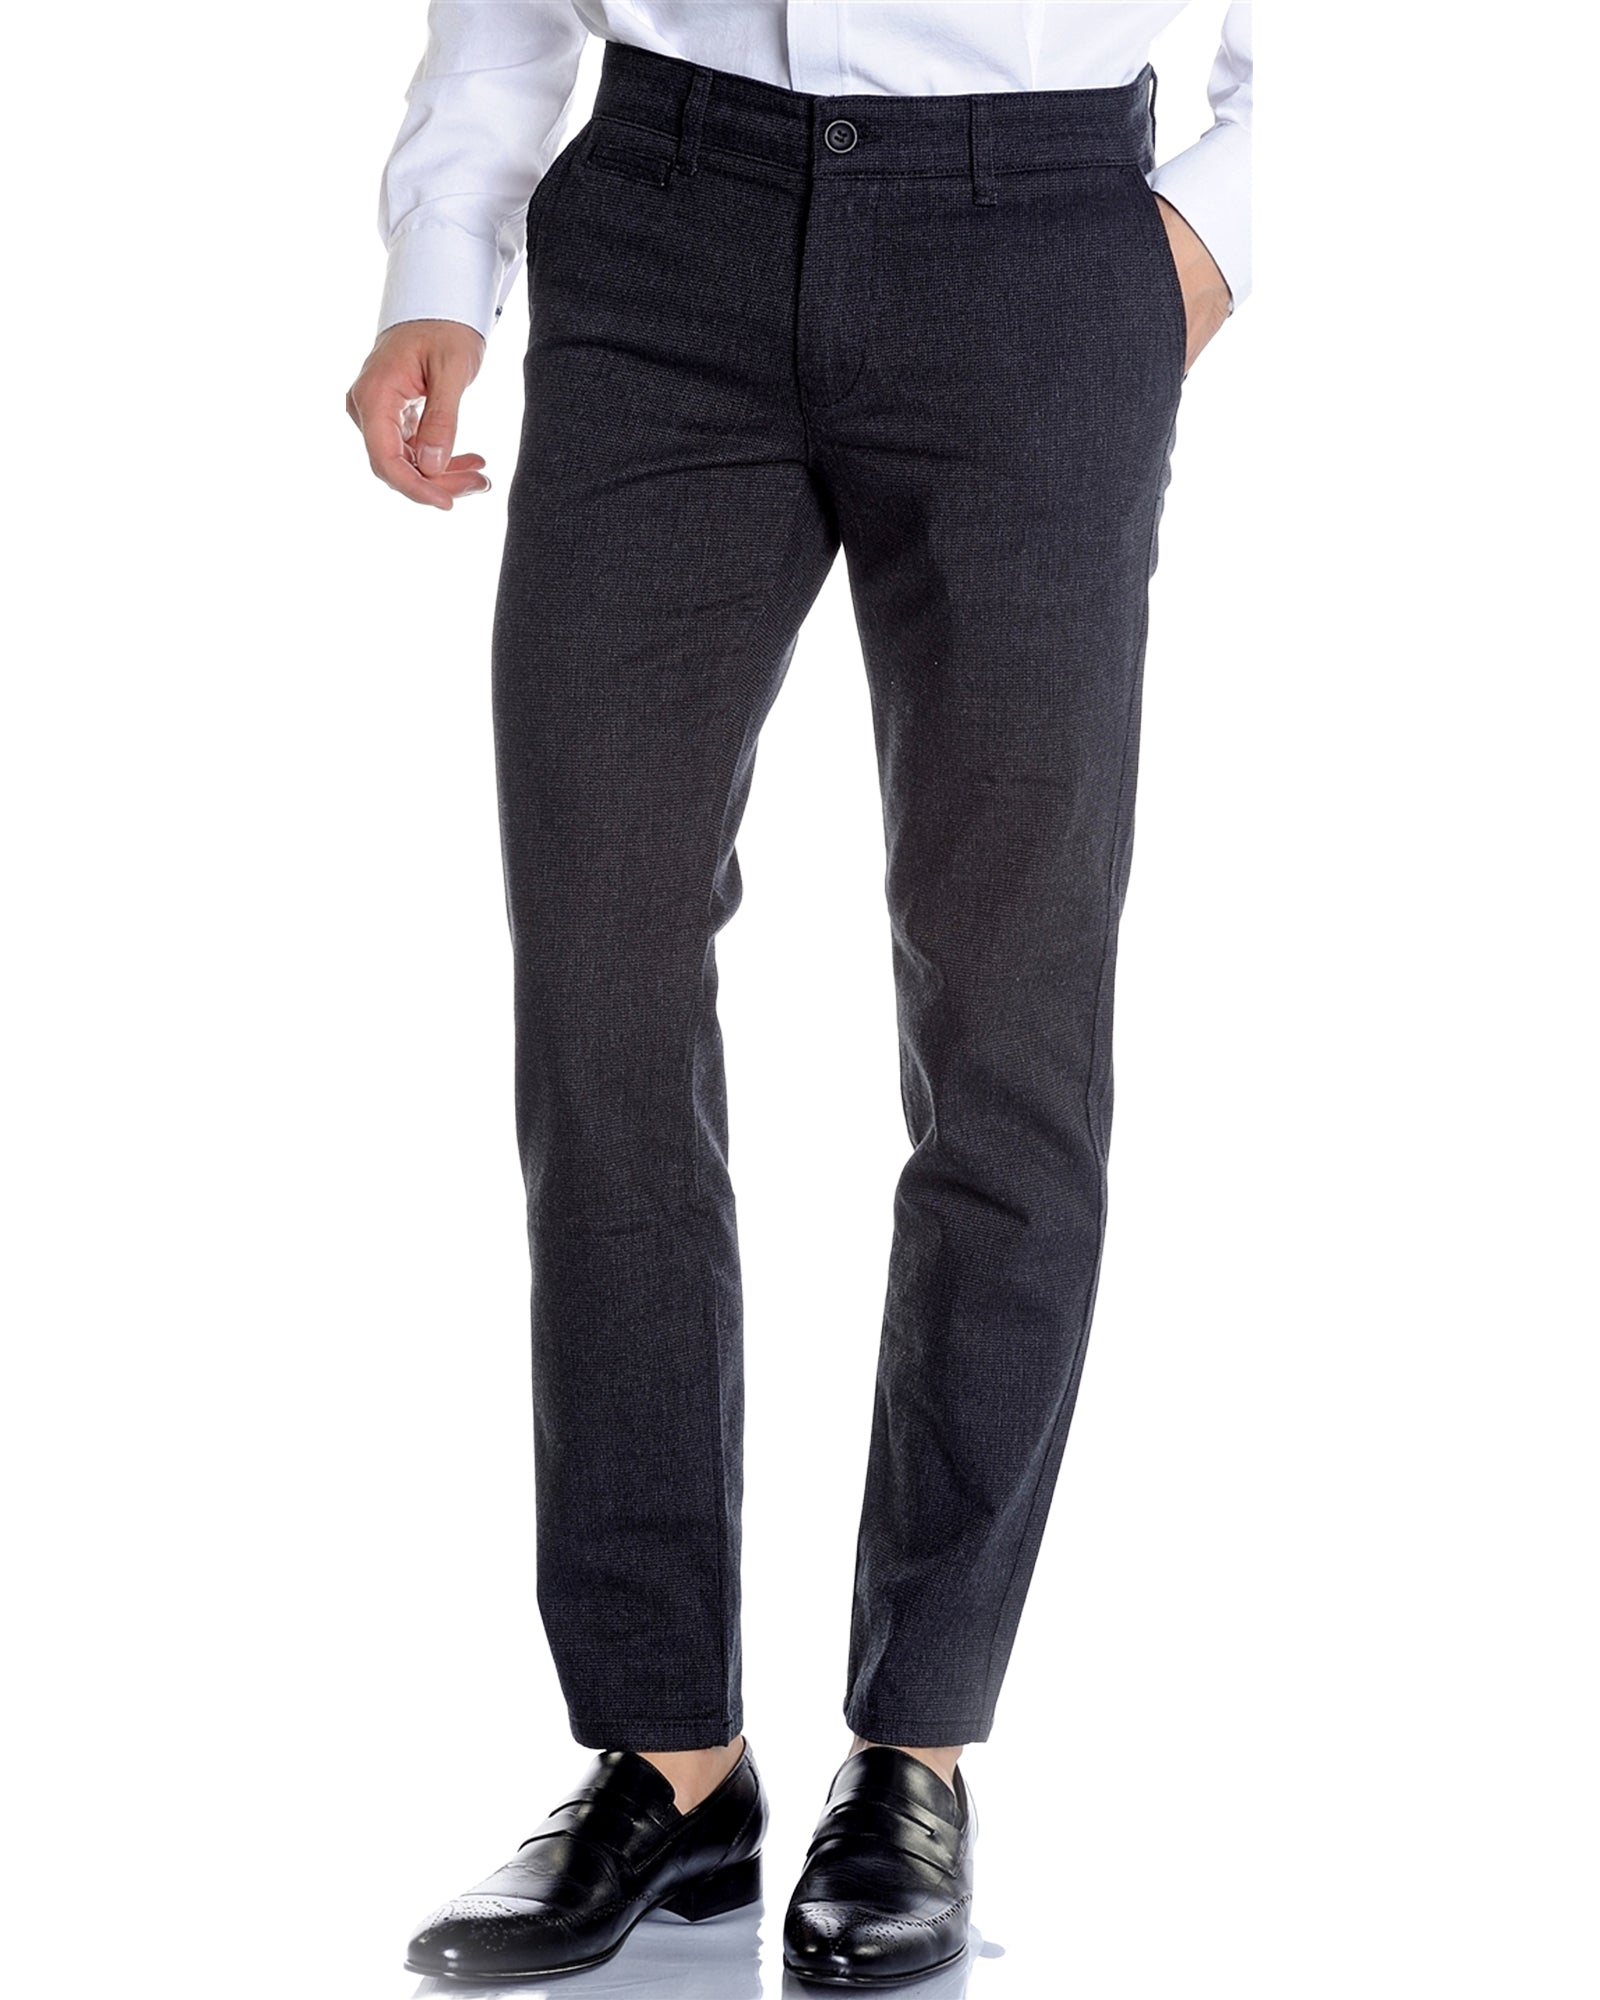 Black Slim Fit Stretch Casual Slacks - Rainwater's Men's Clothing and Tuxedo Rental